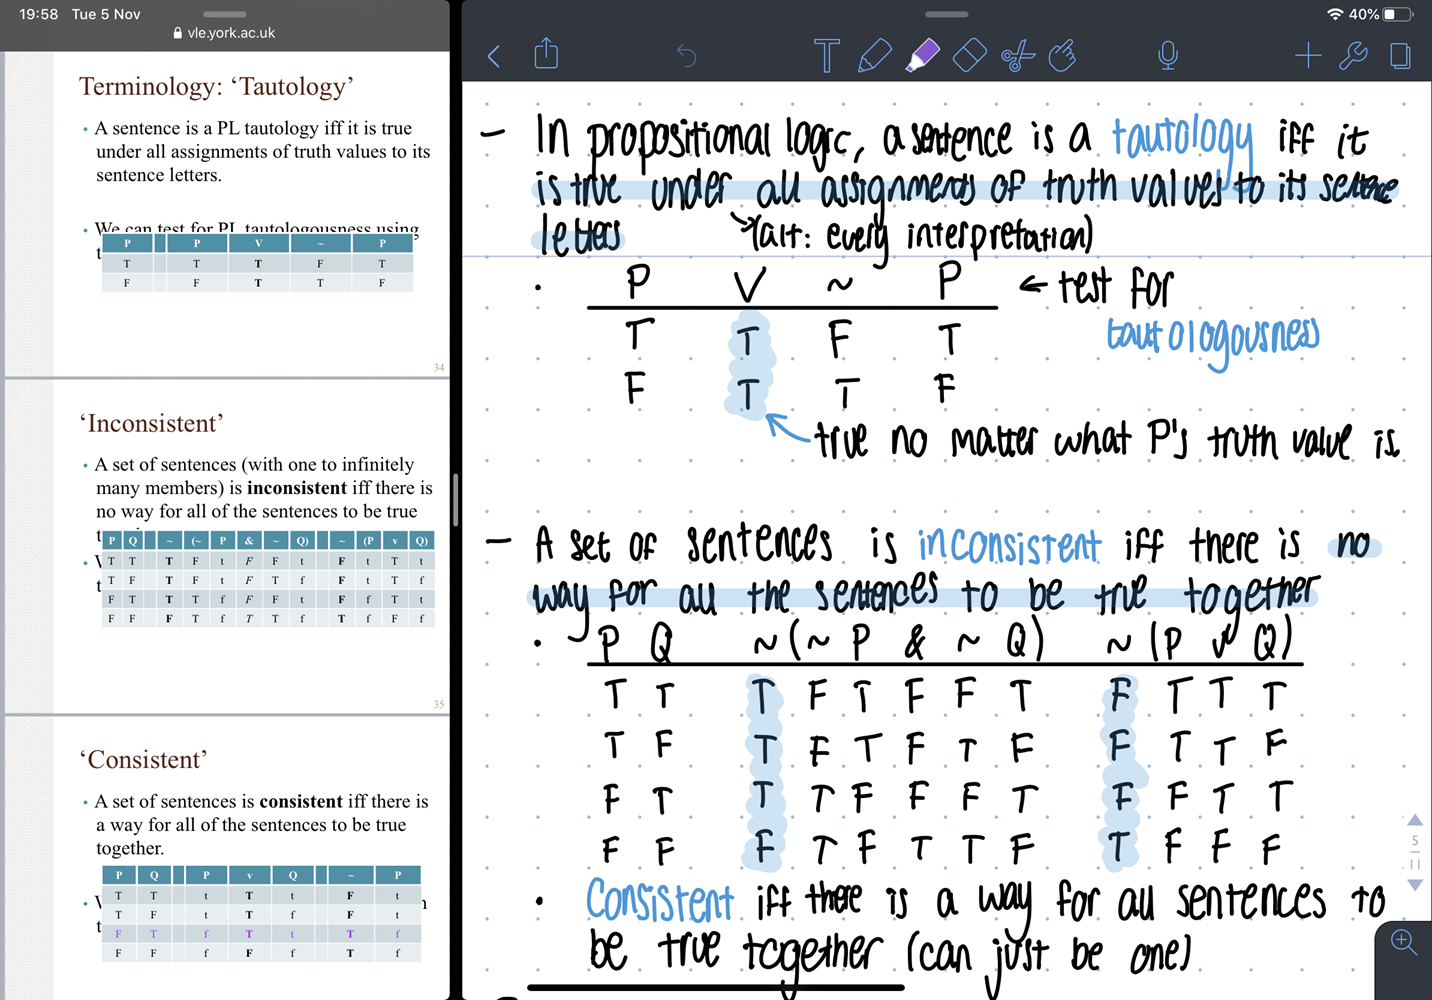 Handwritten notes side by side with lecture slides on an iPad Pro